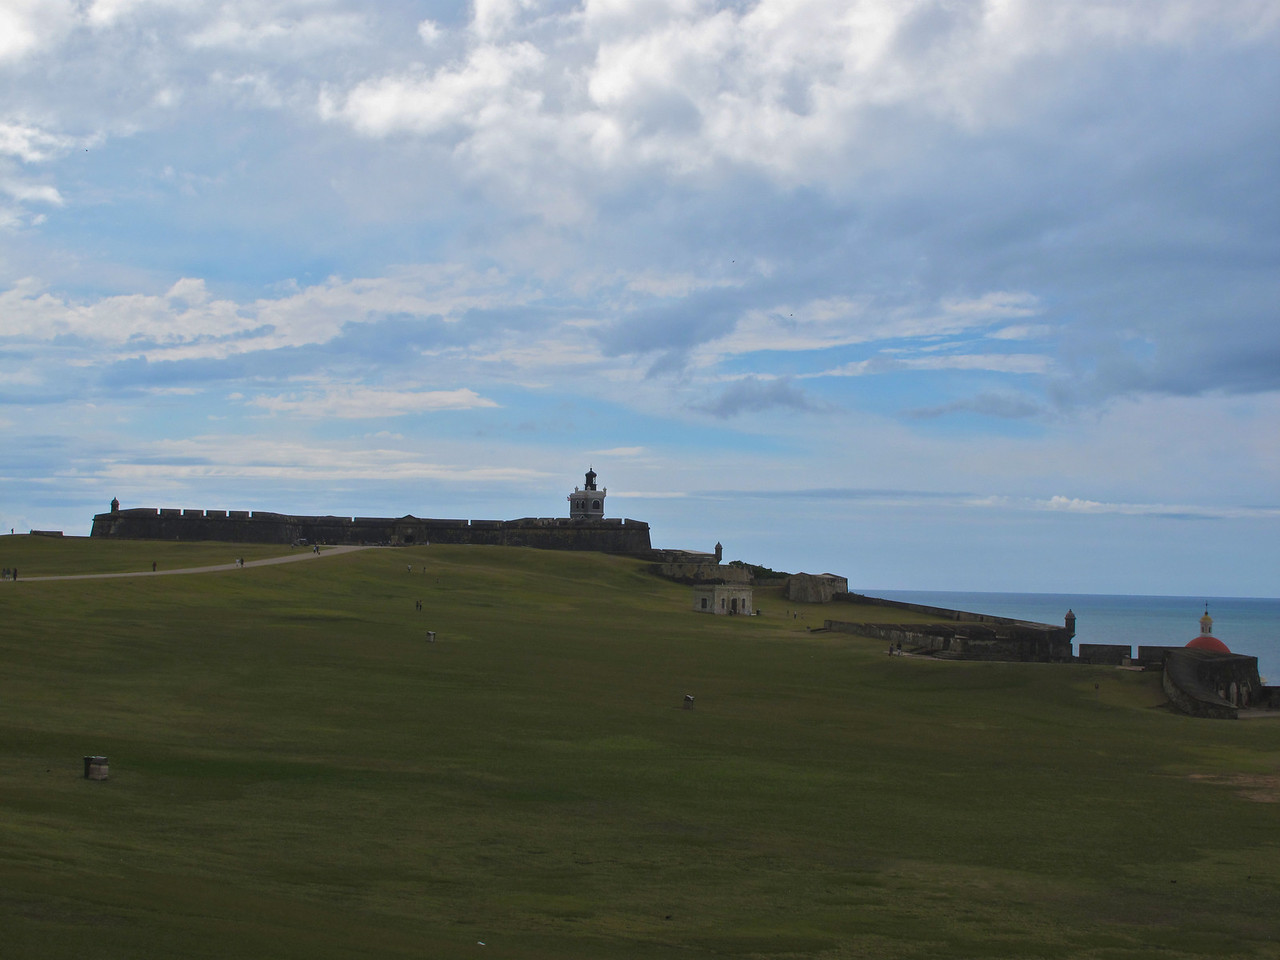 El Morro's last active fight occurred during a naval bombardment by the United States Navy during the 1898 Spanish-American War. Ending the age of naval warfare in the Caribbean, at least in the classical sense. During the Spanish-American War, the castle was attacked at least three times by American naval forces, the most major of which being the Bombardment of San Juan on May 12, 1898.<br /> The short war ended with the signing of Treaty of Paris. Spain ceded ownership of the islands of Puerto Rico, Cuba, Guam, and the Philippines to the United States.